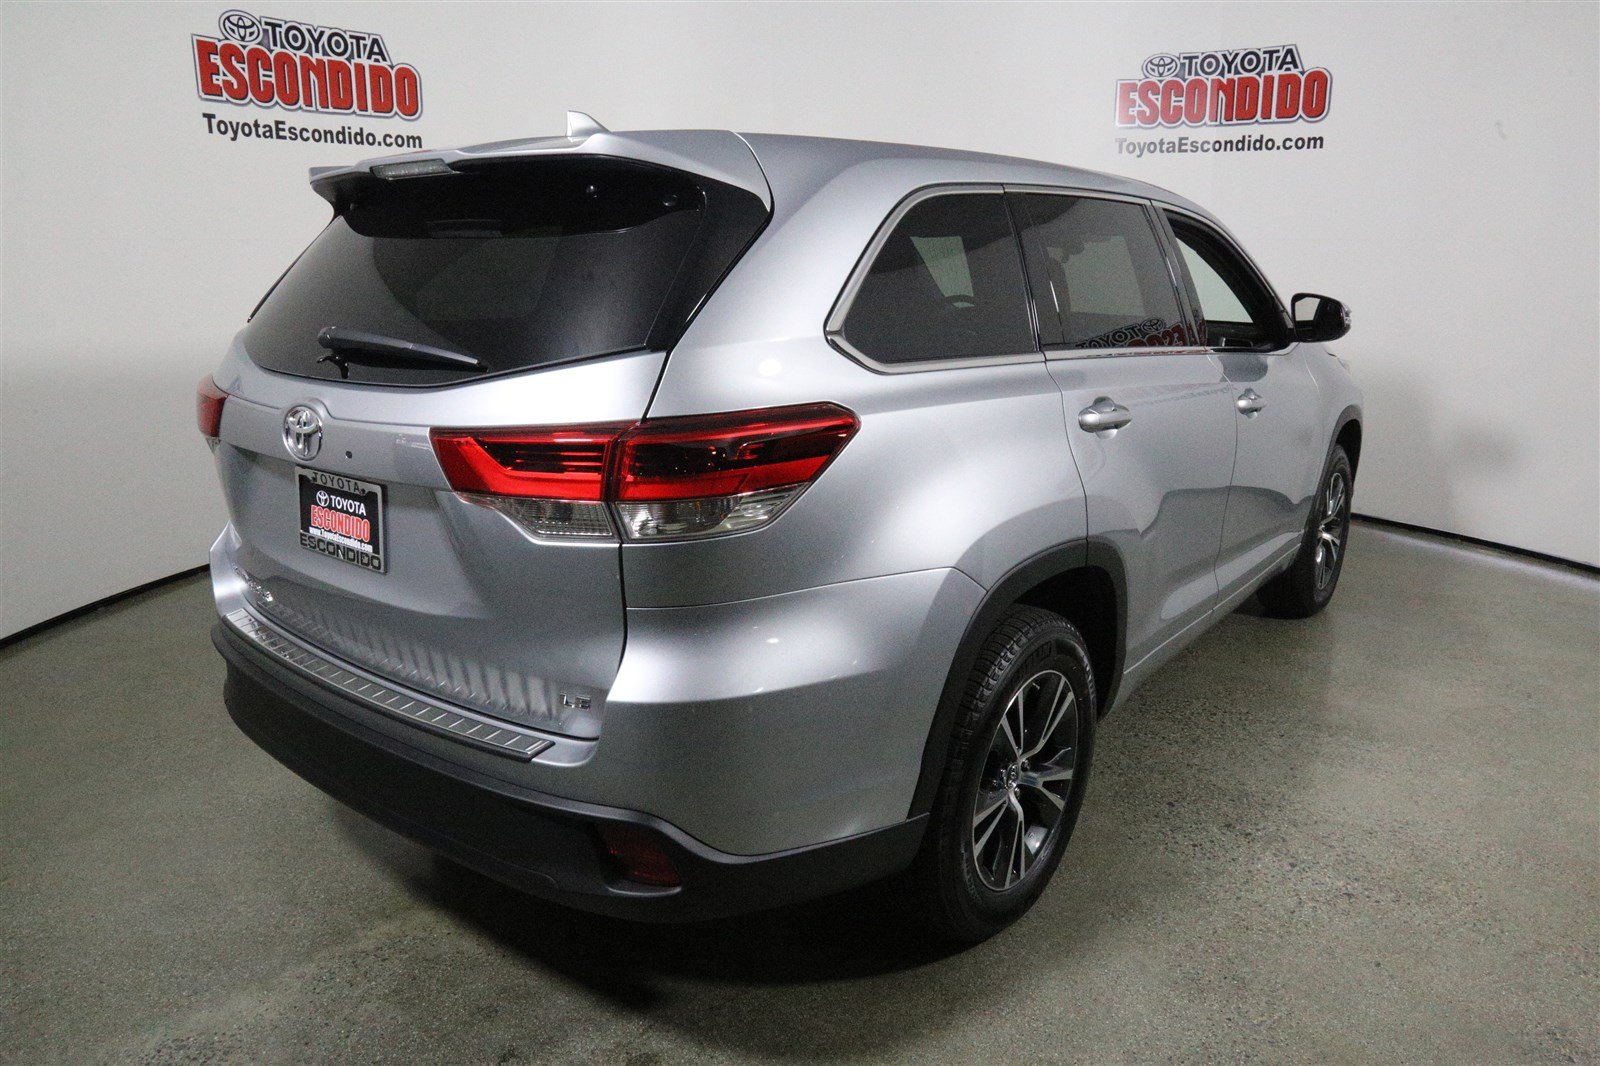 new 2017 toyota highlander le plus sport utility in escondido 1015431 toyota escondido. Black Bedroom Furniture Sets. Home Design Ideas